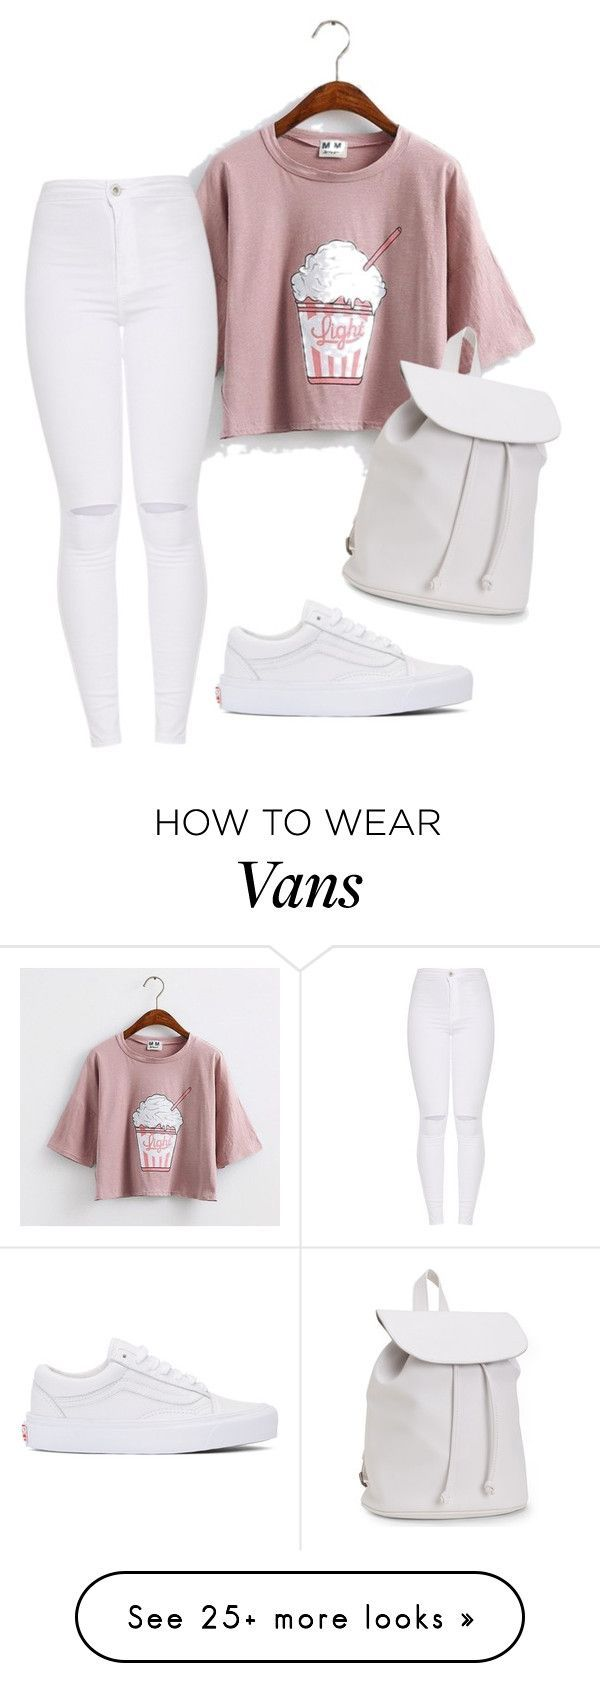 Pin By Ouledi Carole On Clothes Fashion Outfits Everyday Outfits Casual Outfits